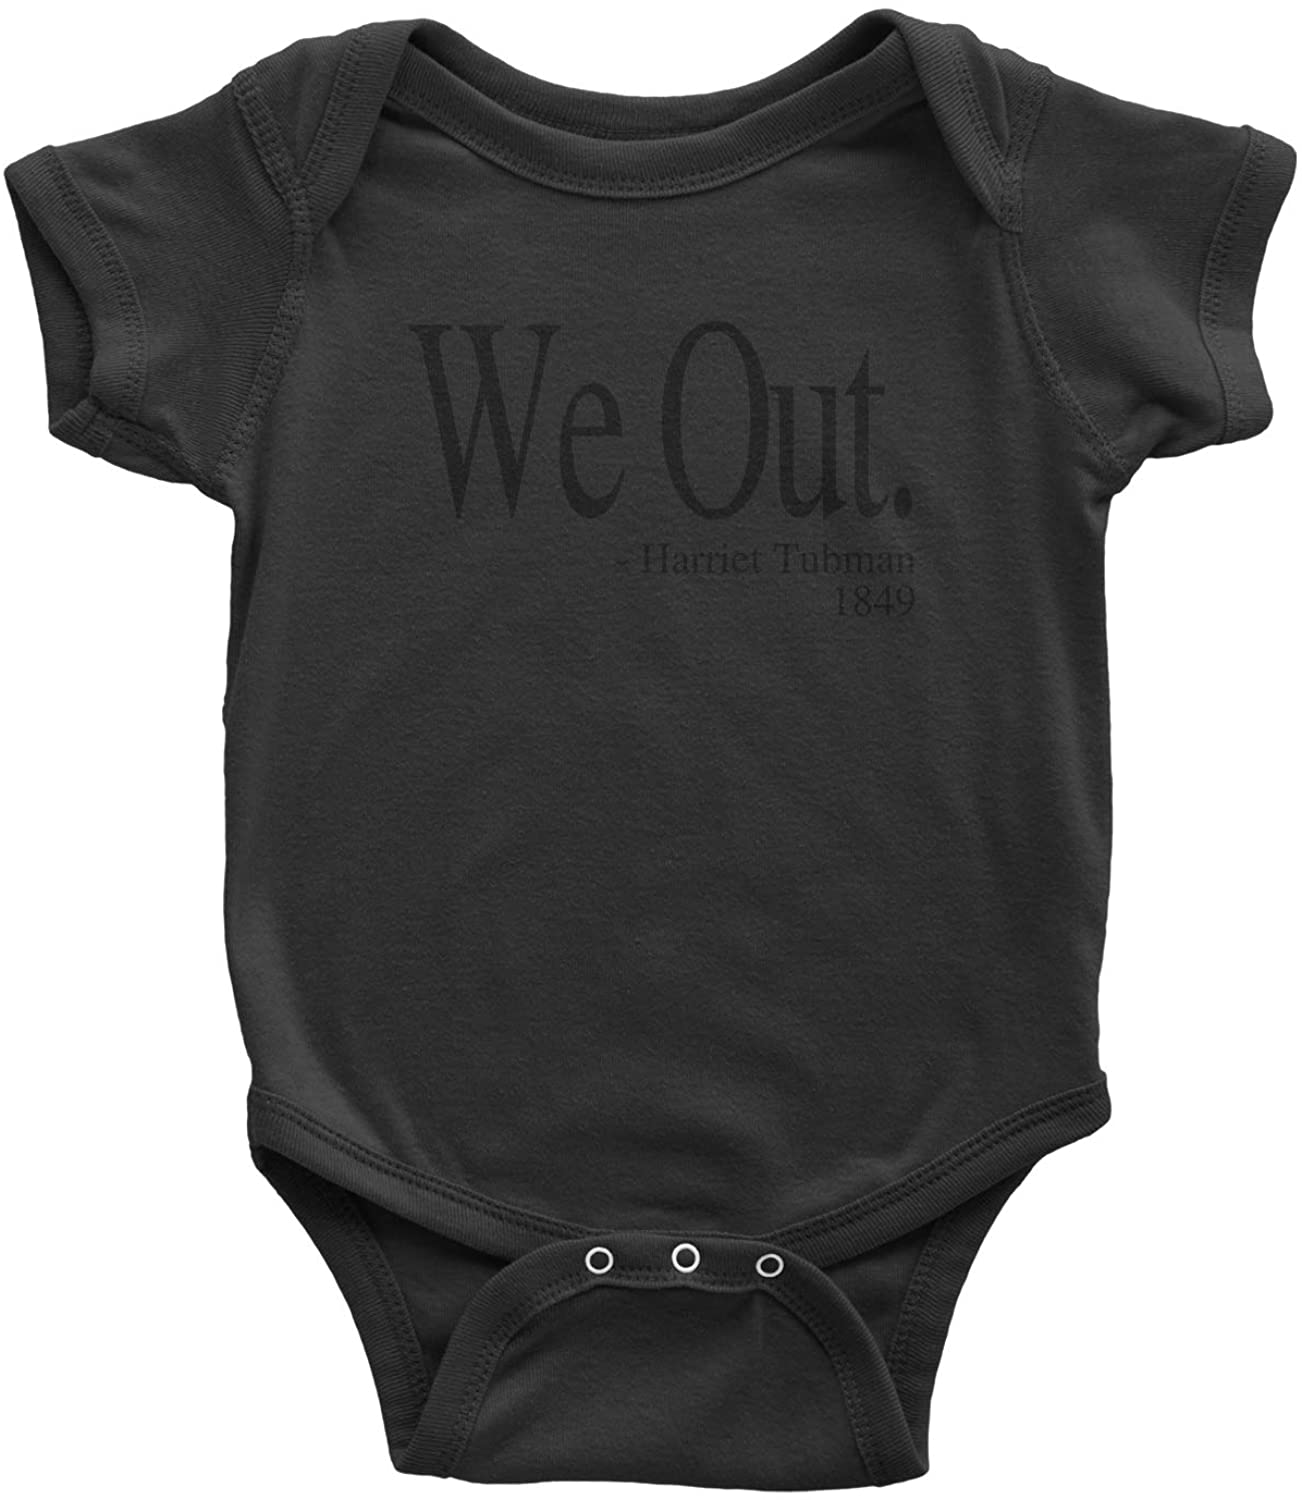 Expression Tees We Out (Black Print) Harriet Tubman Funny Quote Infant One-Piece Romper Bodysuit